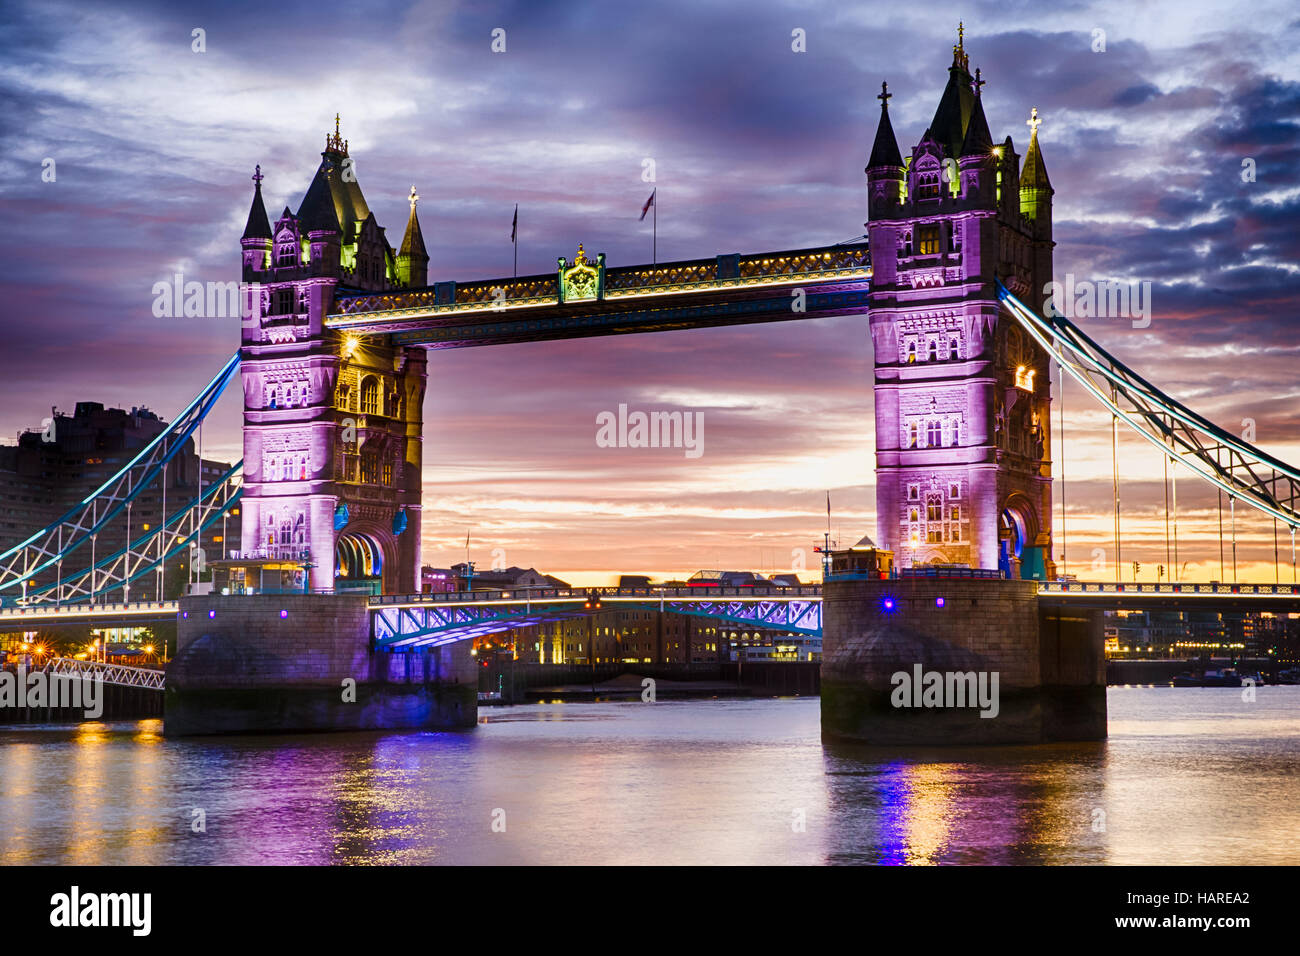 Tower Bridge, Londres, Angleterre, mardi 27 septembre, 2016.Photo : David Rowland / One-Image.com Photo Stock